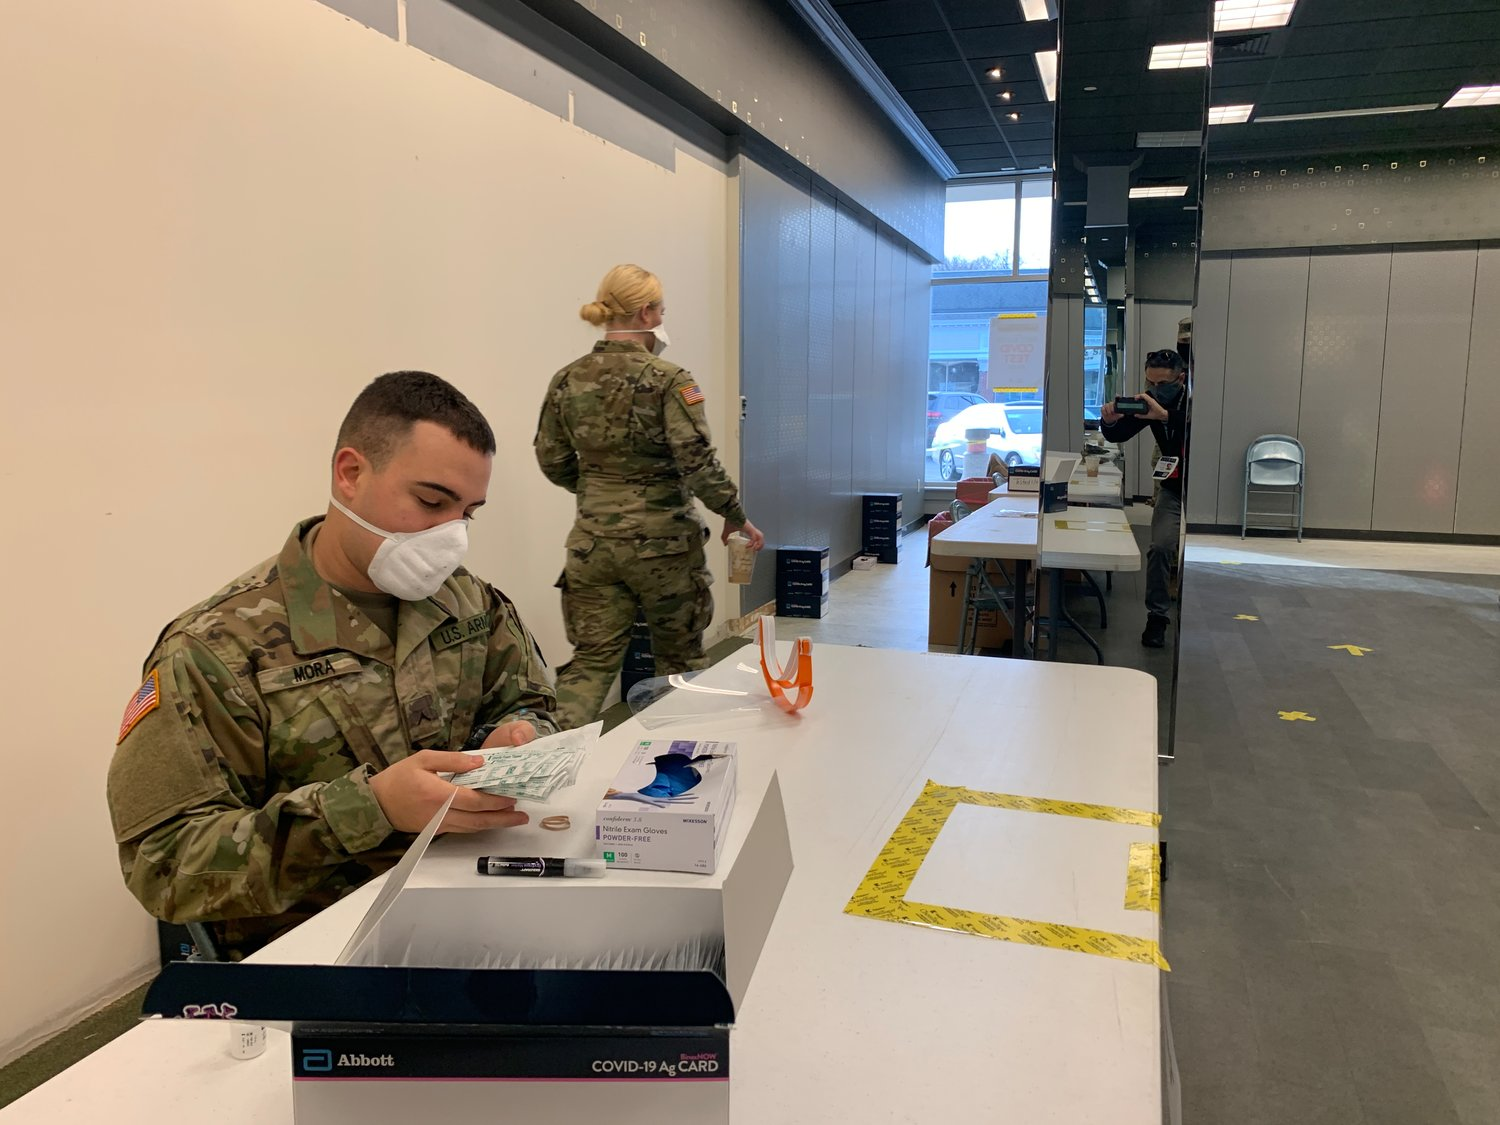 RI National Guardsman Darrien Mora readies packs of swabs at the pop-up testing site inside the Barrington Shopping Center on Tuesday morning.